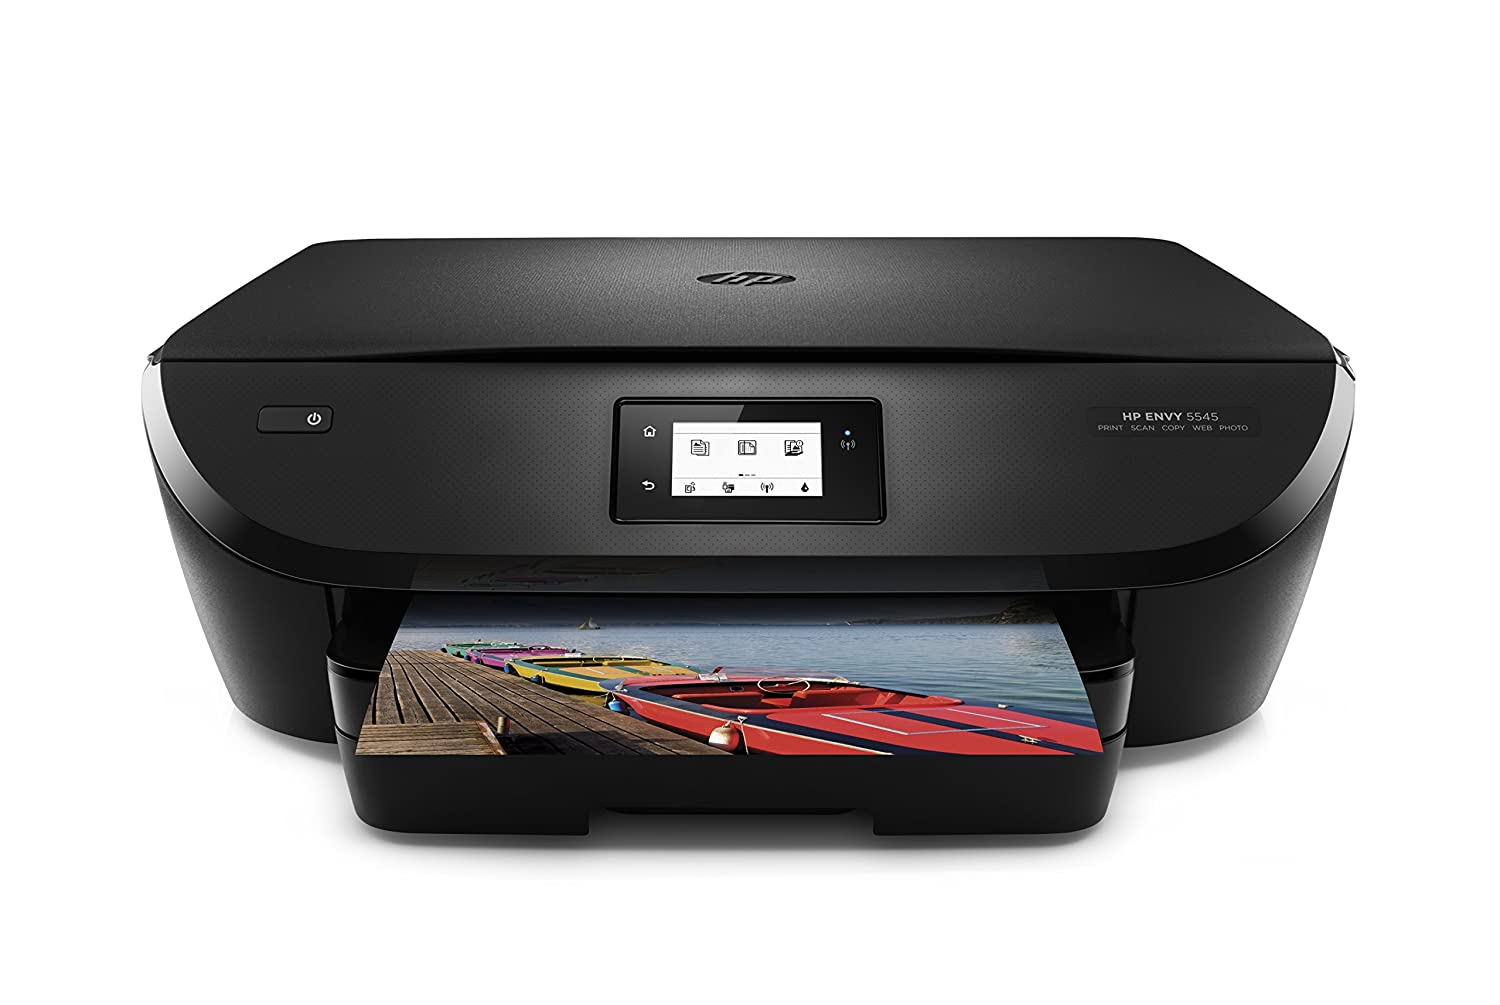 HP ENVY 7640 Stampante multifunzione premium e-All-in-One Printer E4W47A